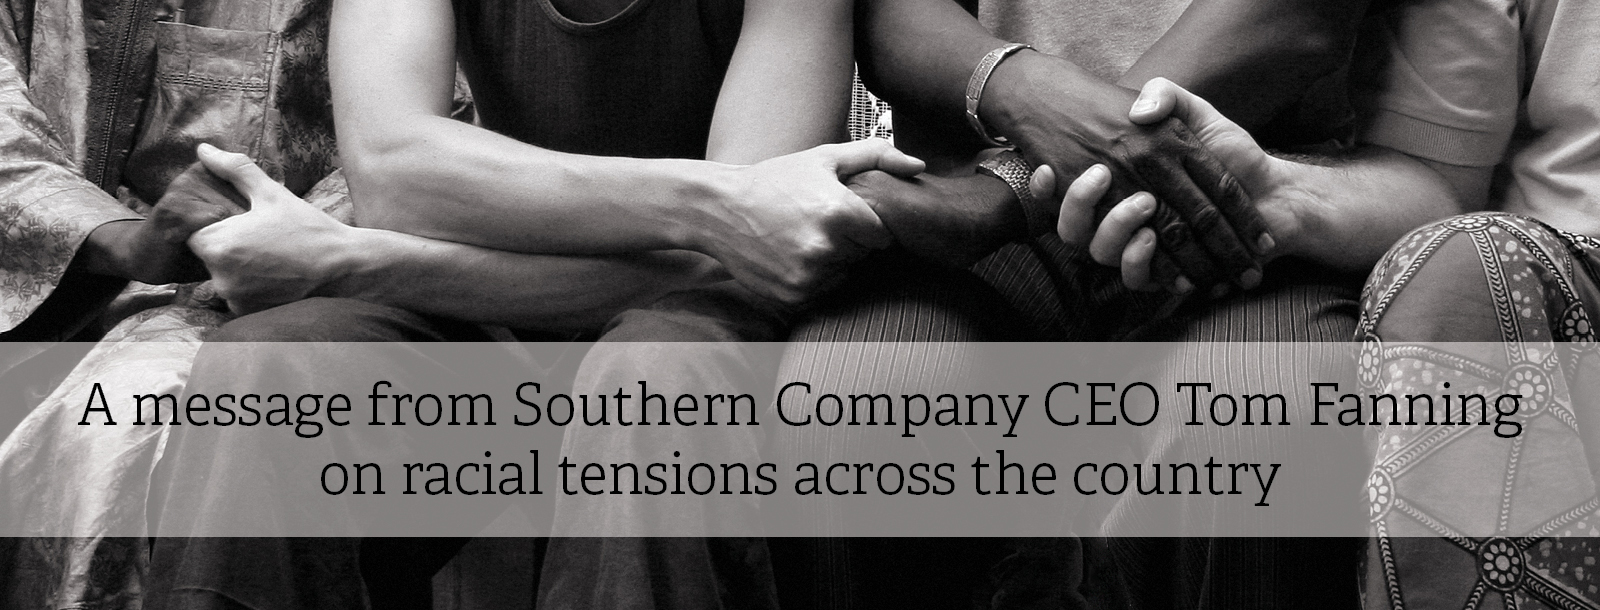 A message from Southern Company CEO Tom Fanning on racial tensions across the country